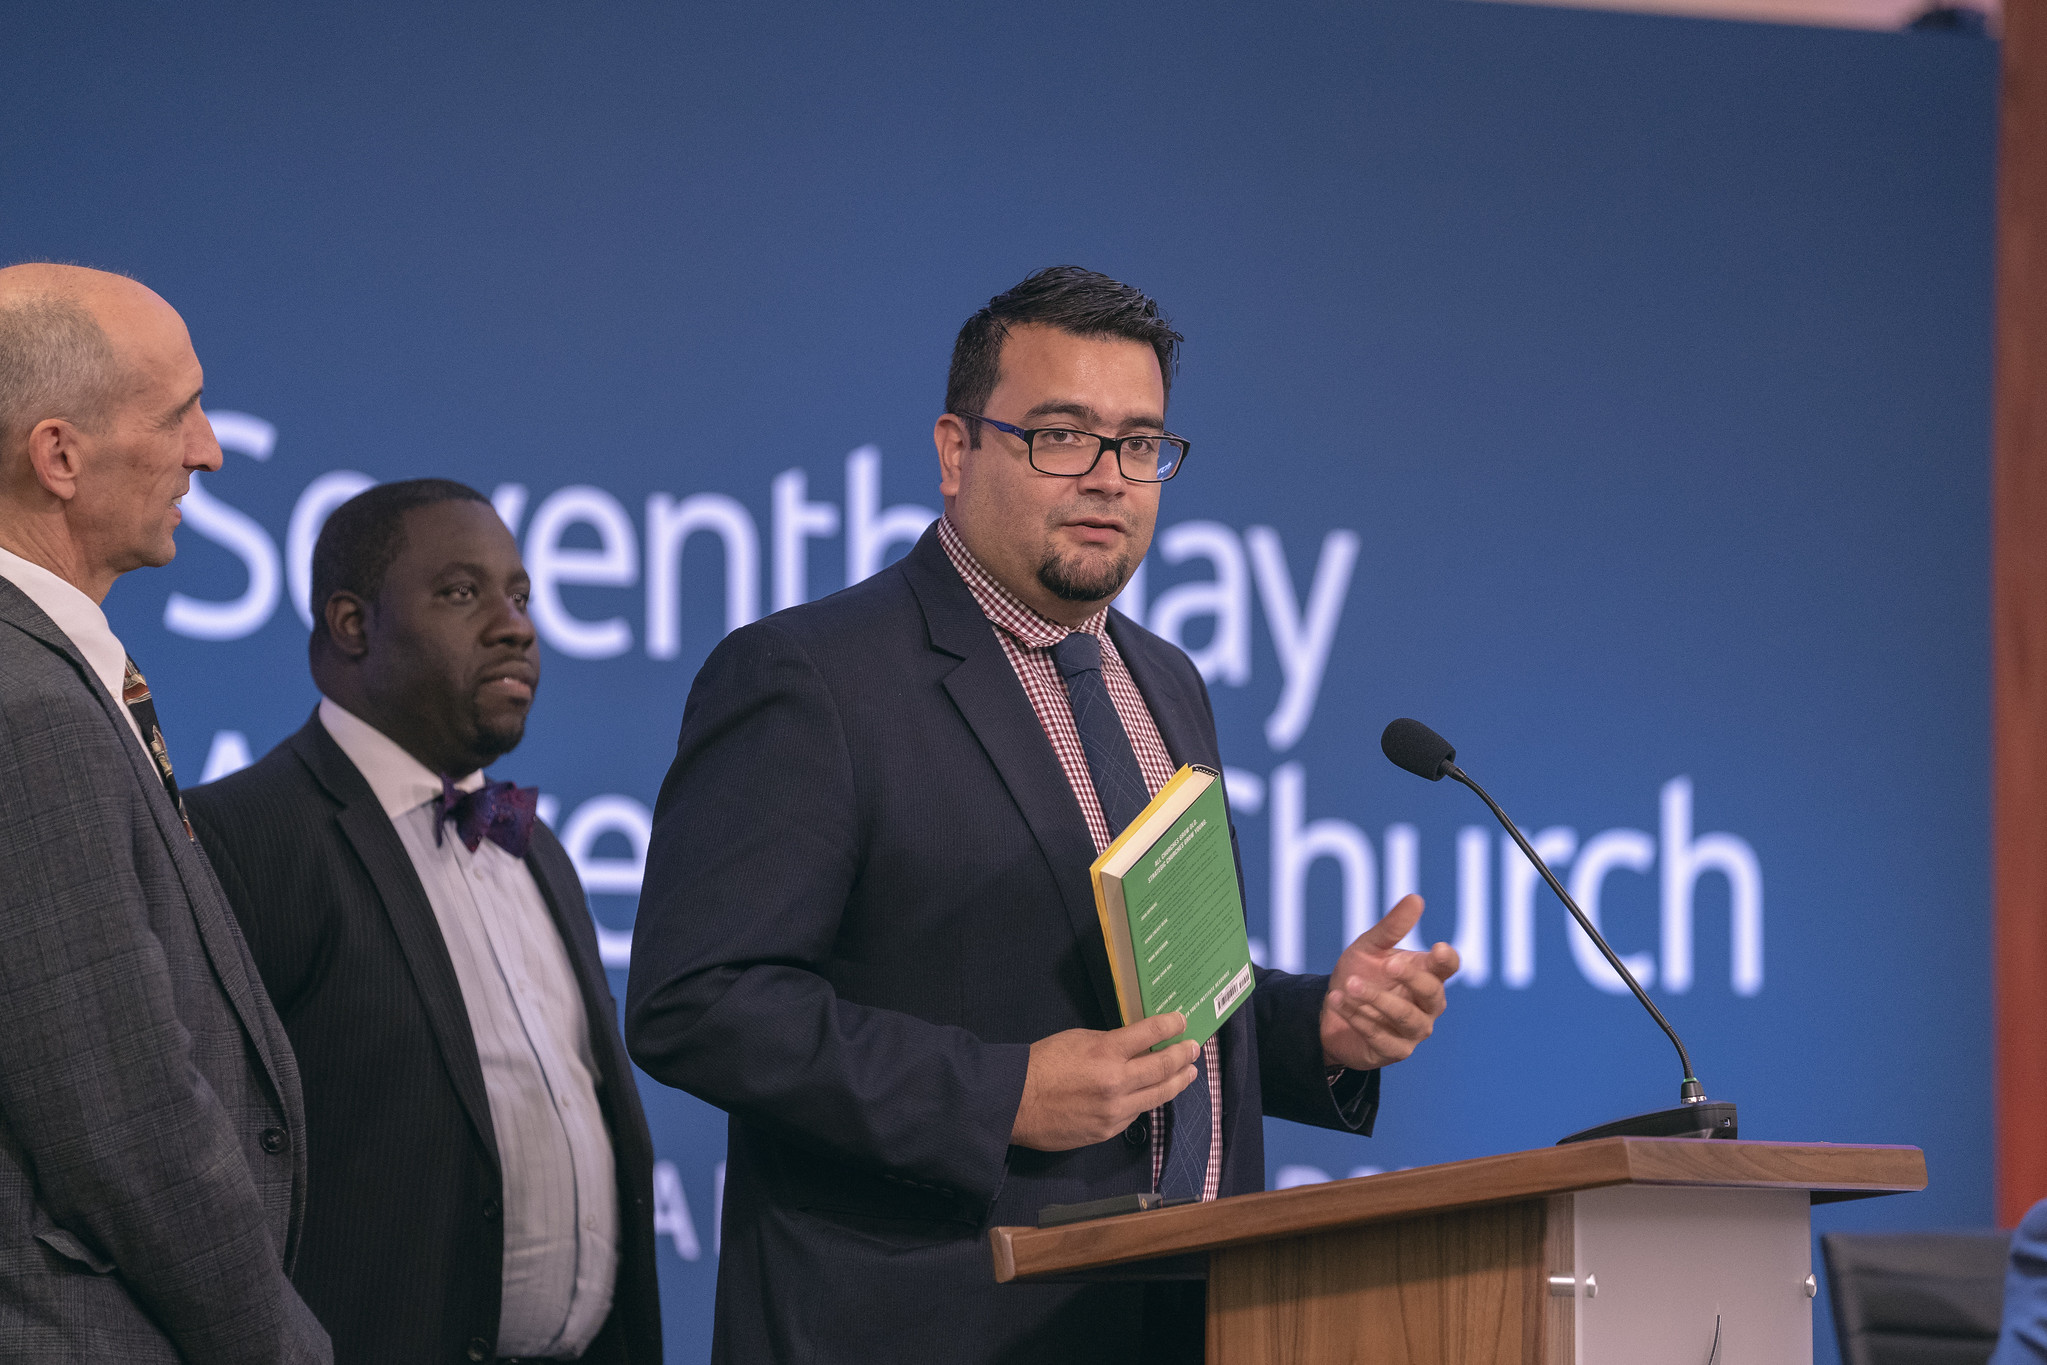 Armando Miranda, Youth and Young Adult Ministries associate director, highlights materials for young adults and ministry, including the Growing Young resource book. Photo by Dan Weber